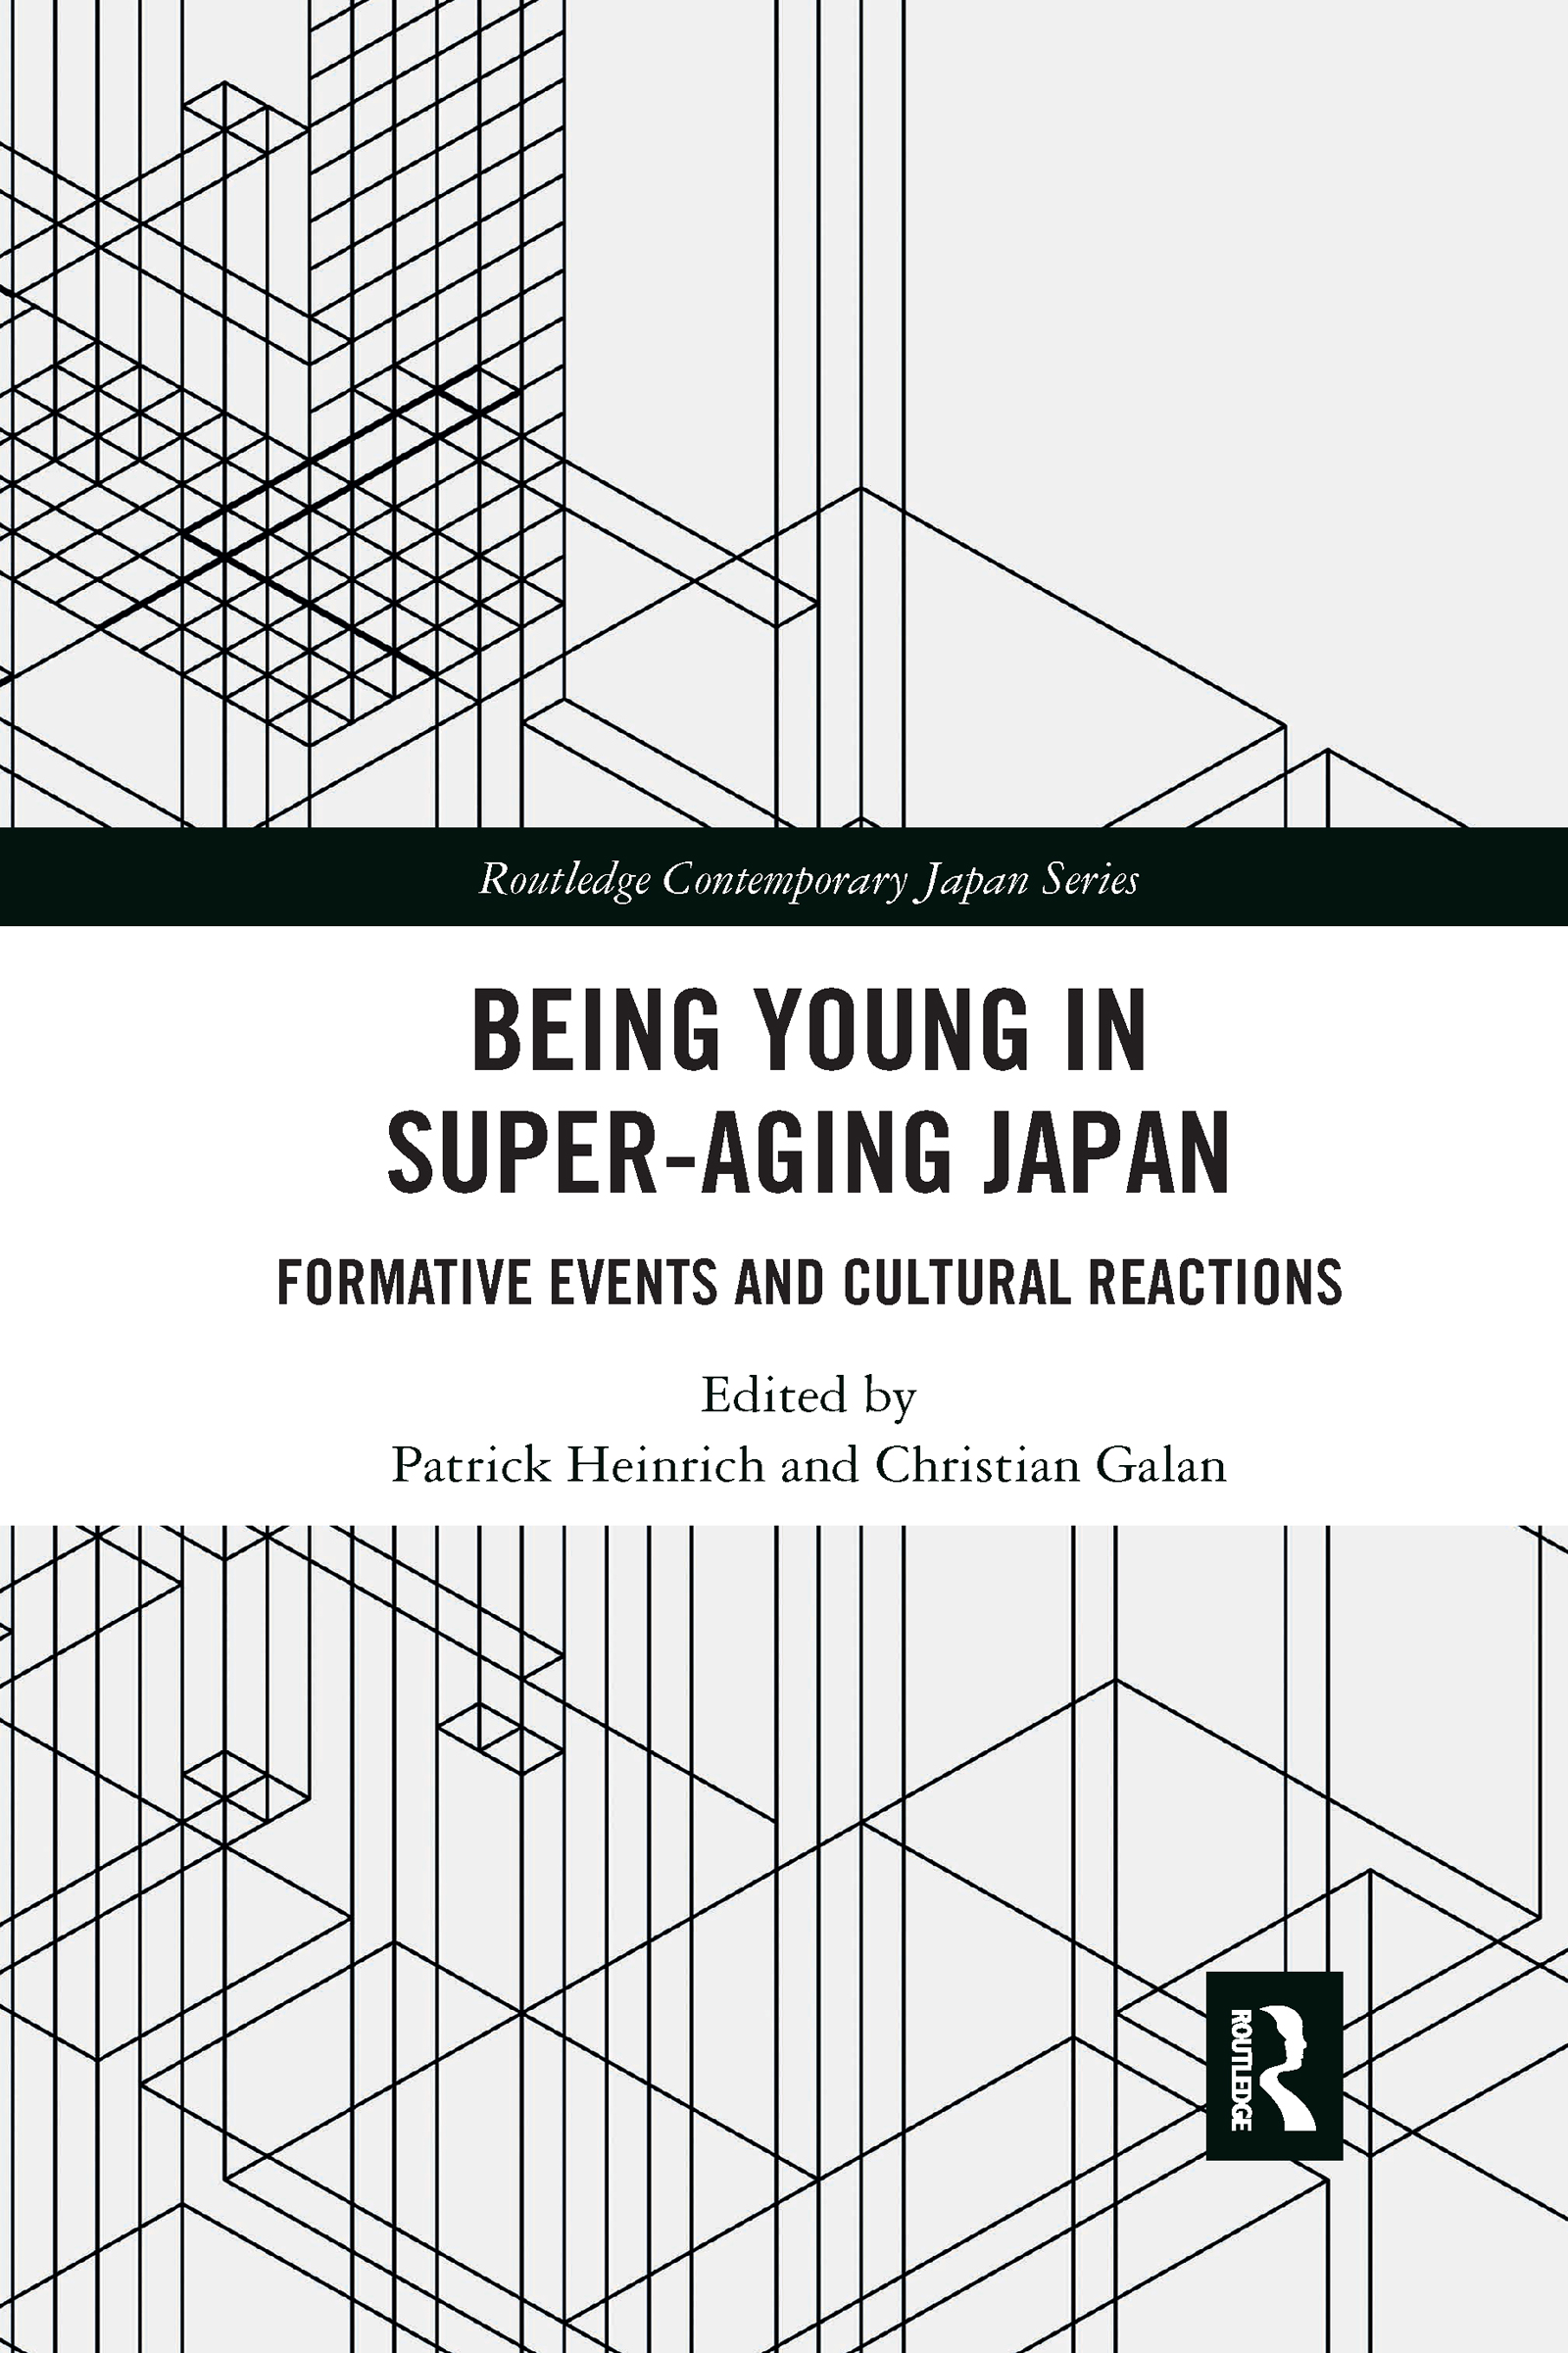 Being Young in Super-Aging Japan